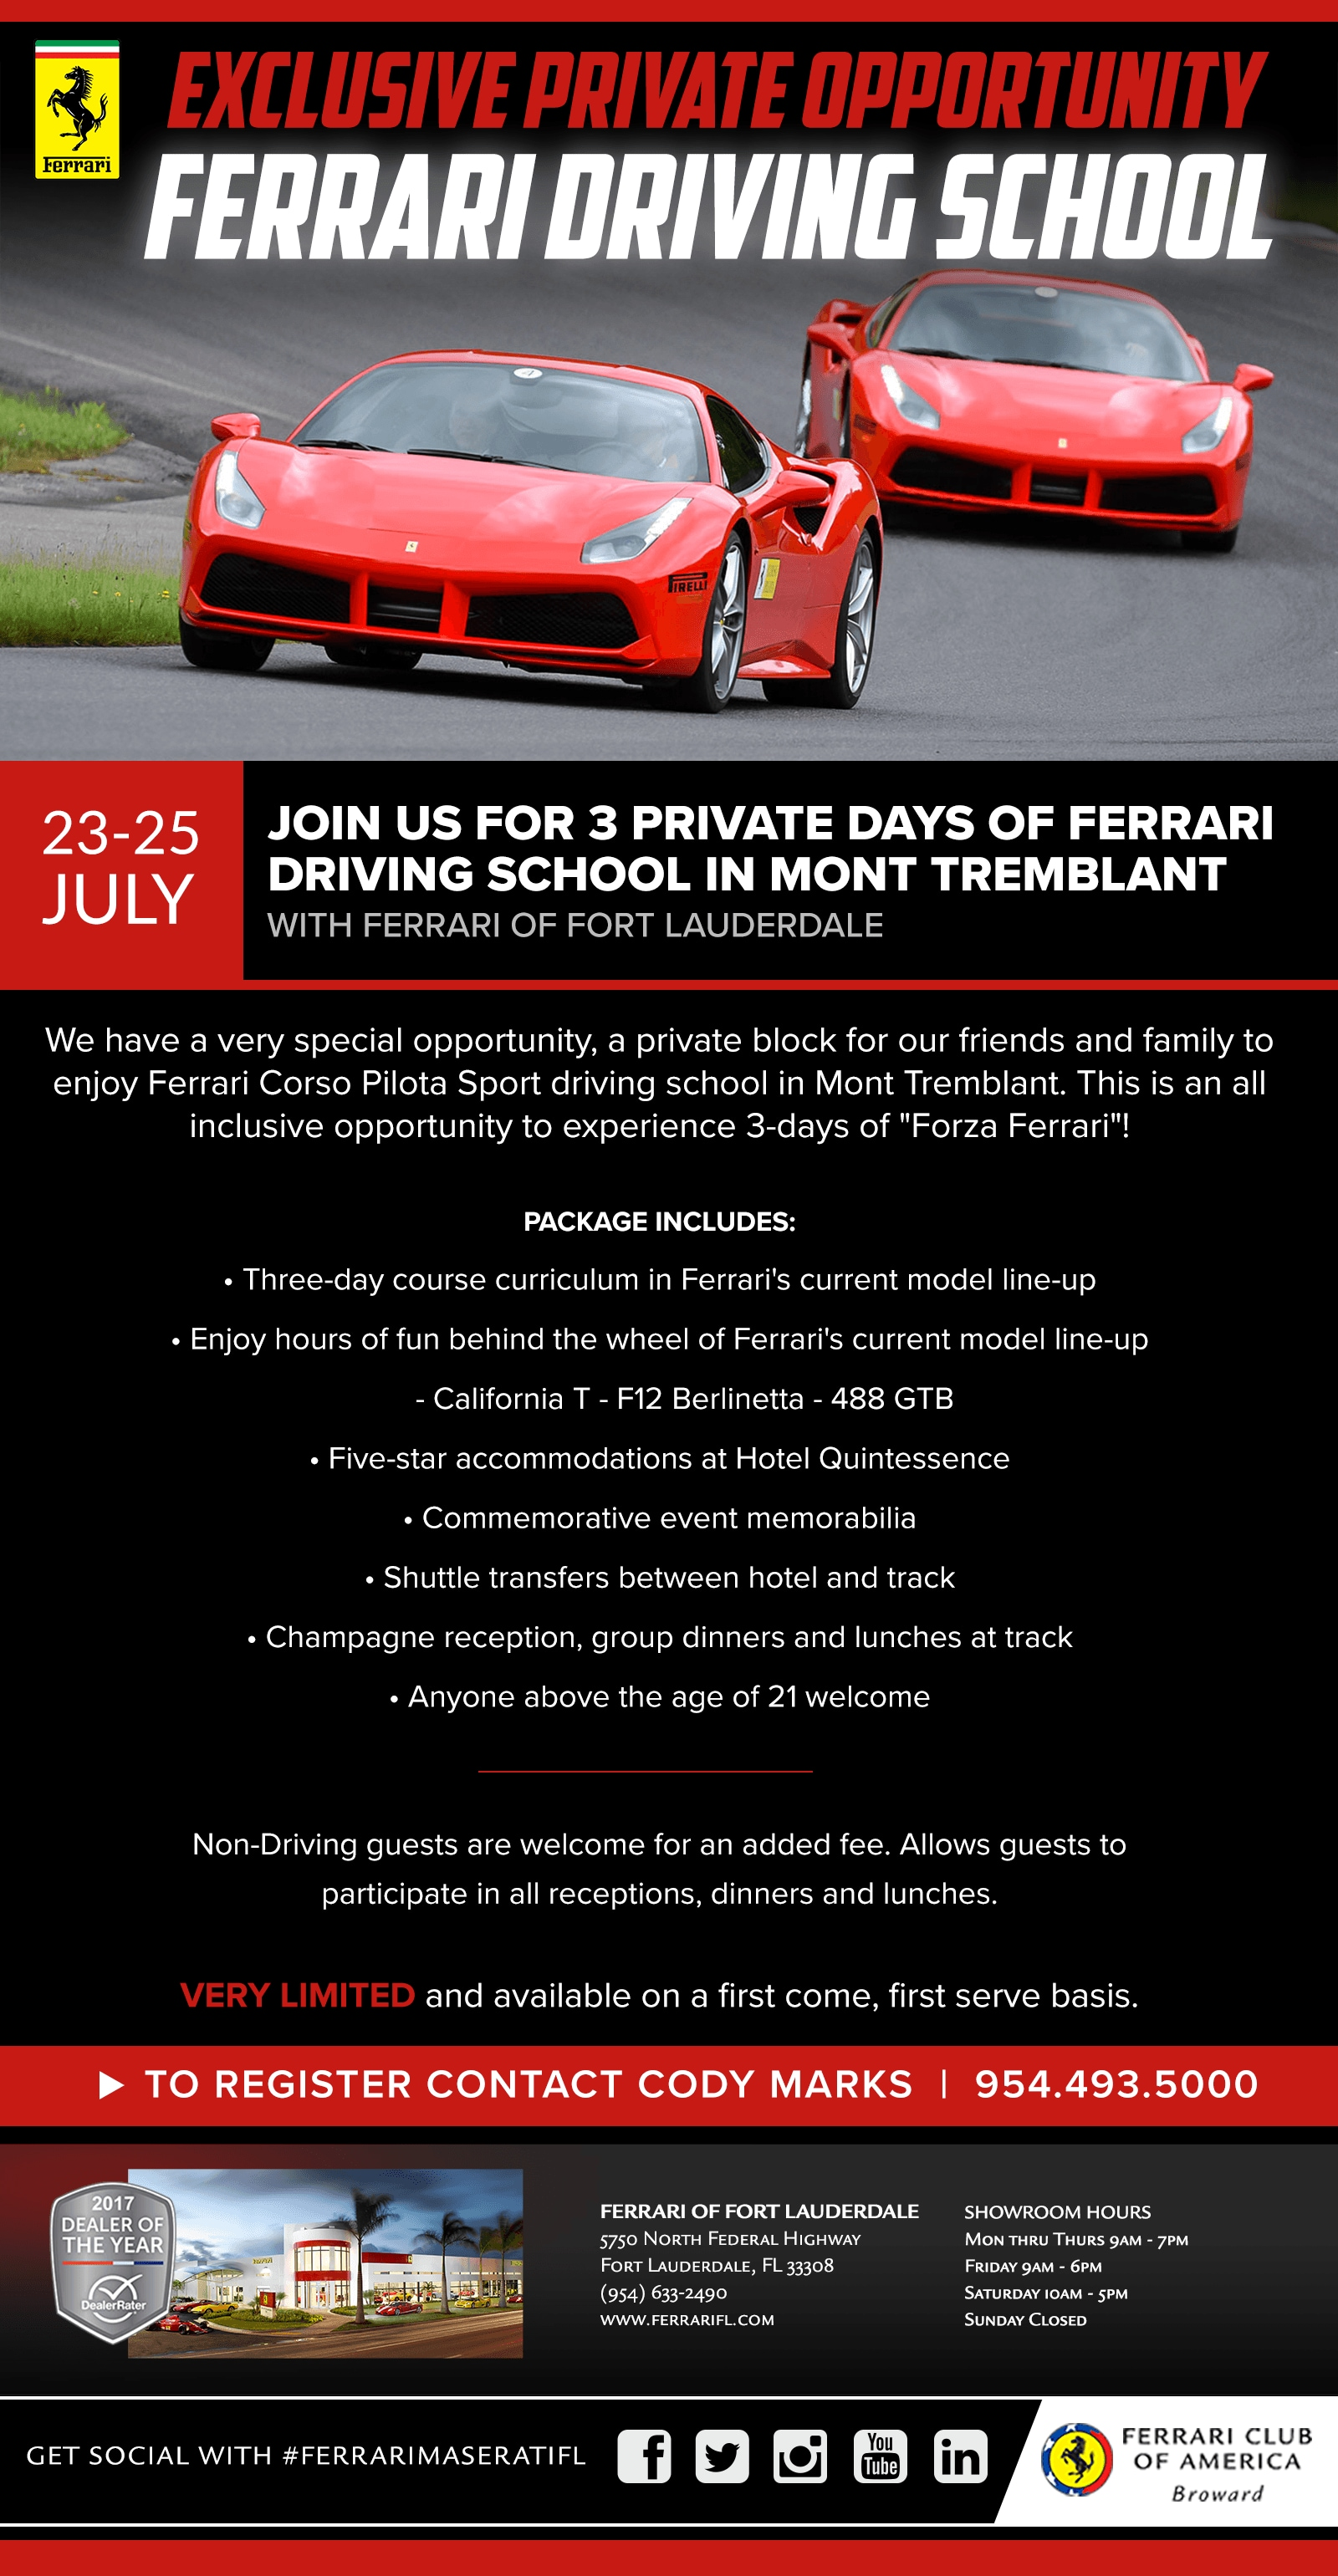 Ferrari Corso Pilota in Mt. Tremblant July 22-24